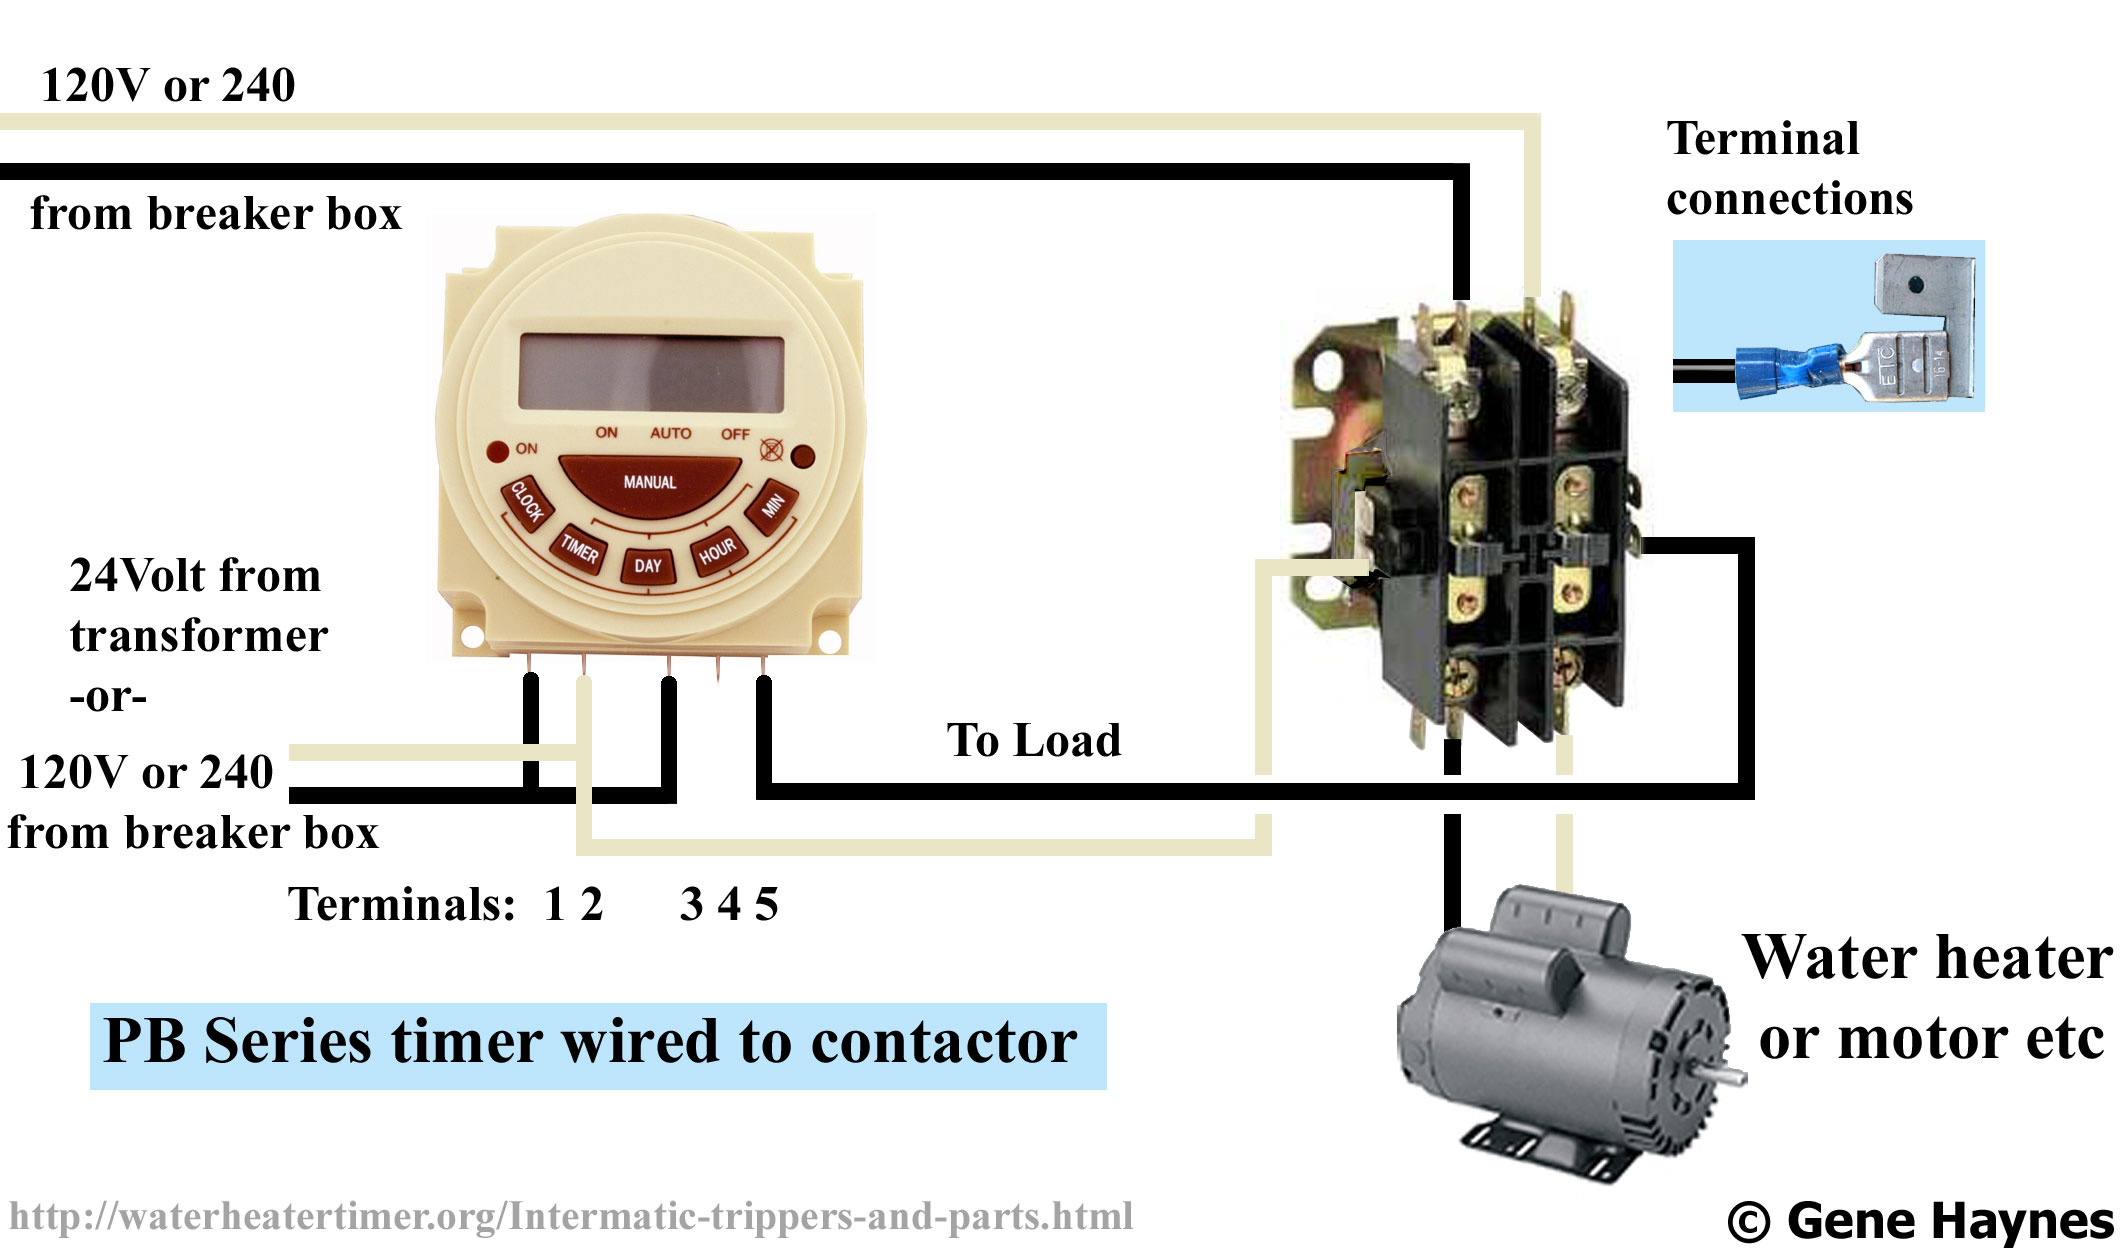 ... Connect modular timer to contactor. PB series Battery-operated/ pool  spa timer 7 programs 7-day 0r 24 hour. 120V or 240V SPDT NO NC Buy 240 volt: